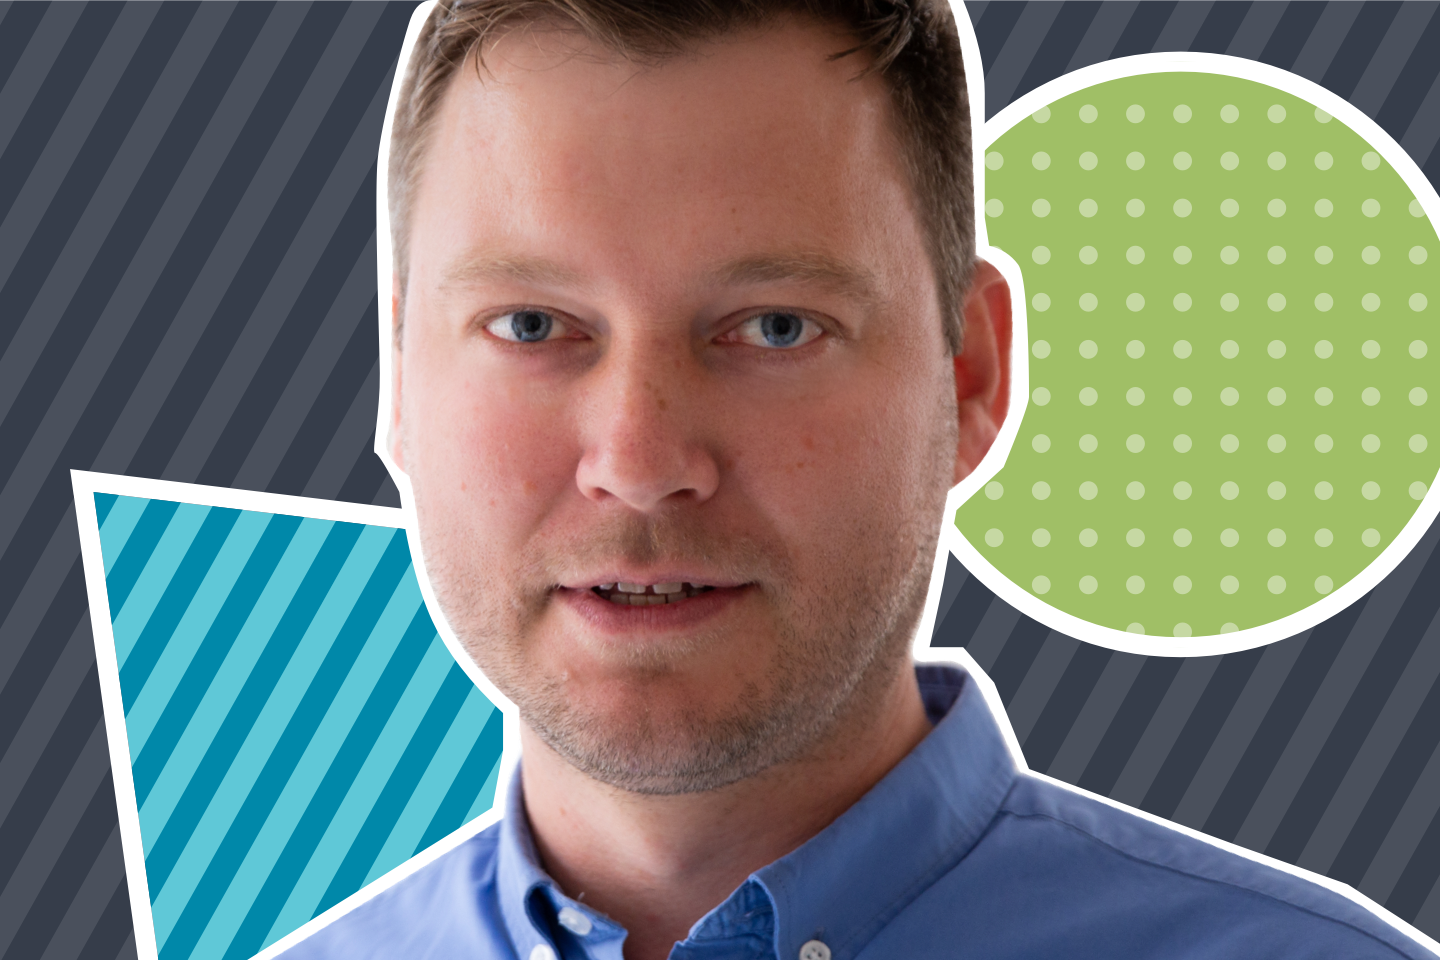 How Frontify Uses Its Own Brand Management Capabilities